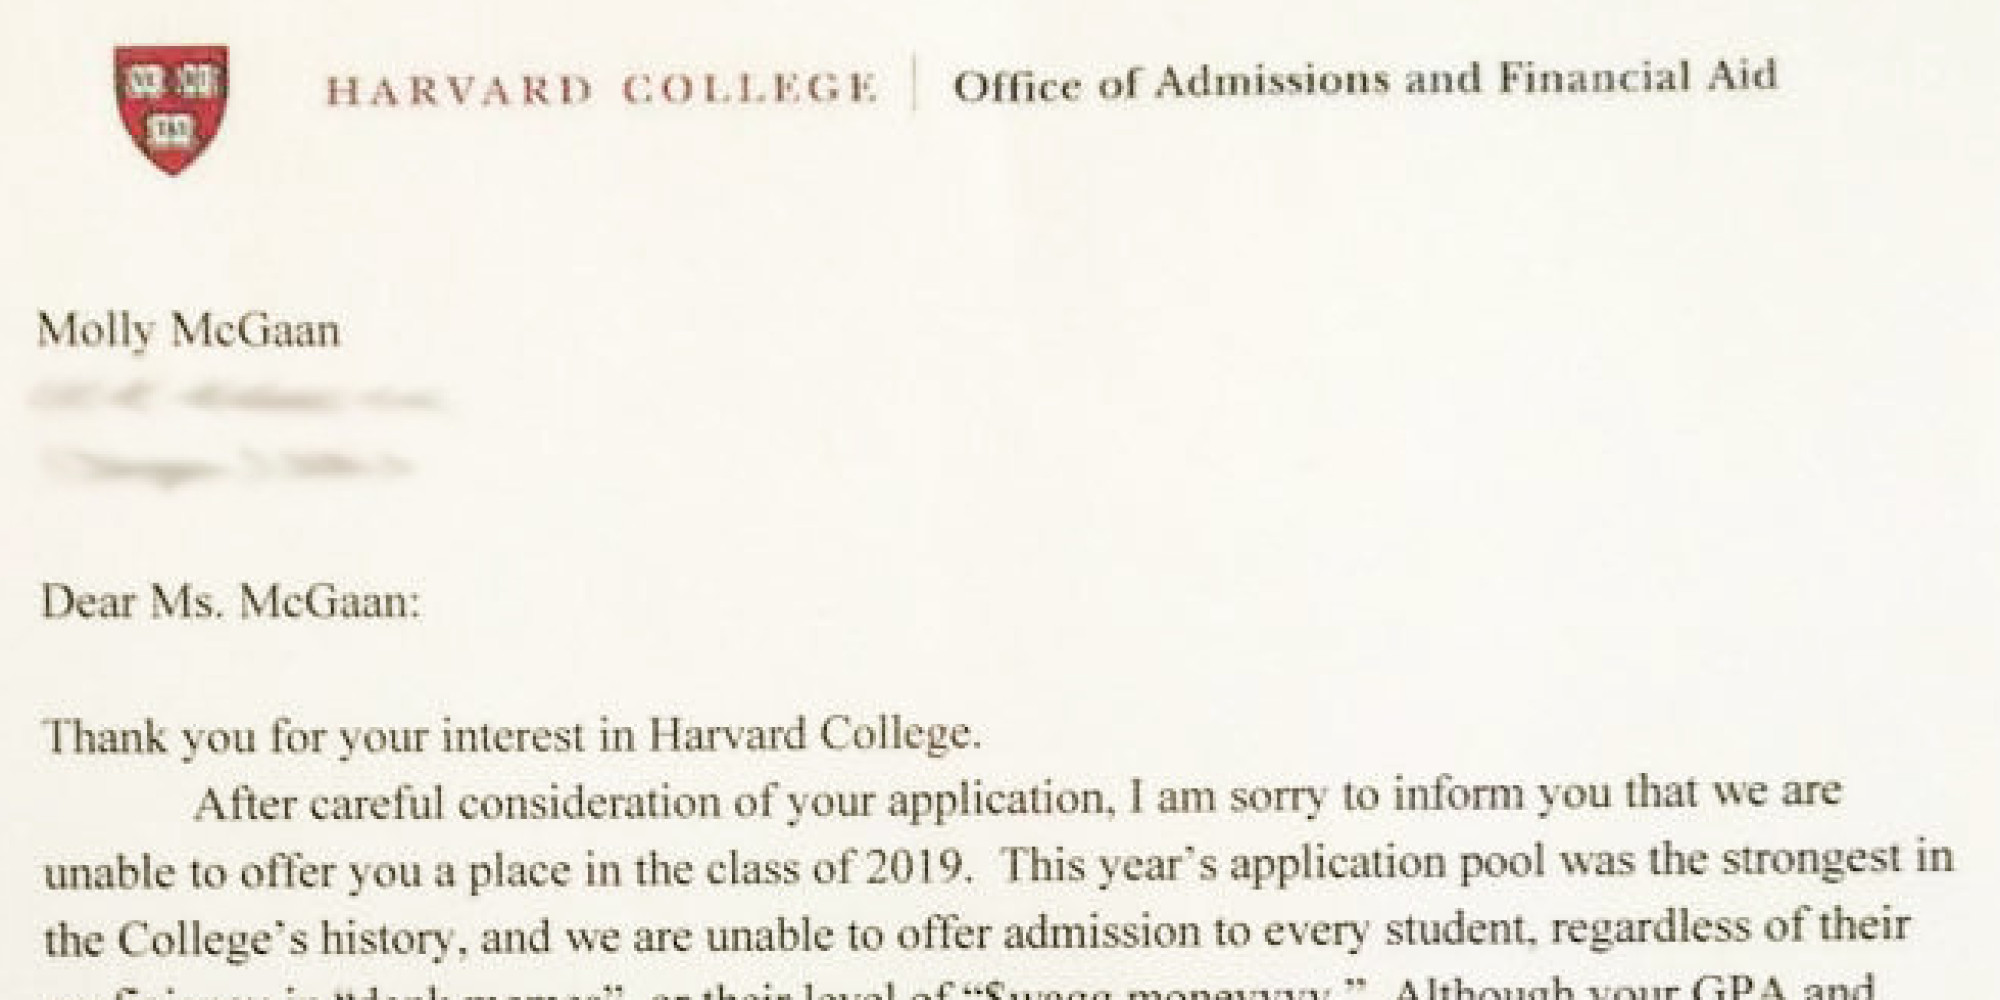 college application essay examples harvard best college  sample essays accepted by harvard ivy league admissions are a sham confessions of a harvard gatekeeper